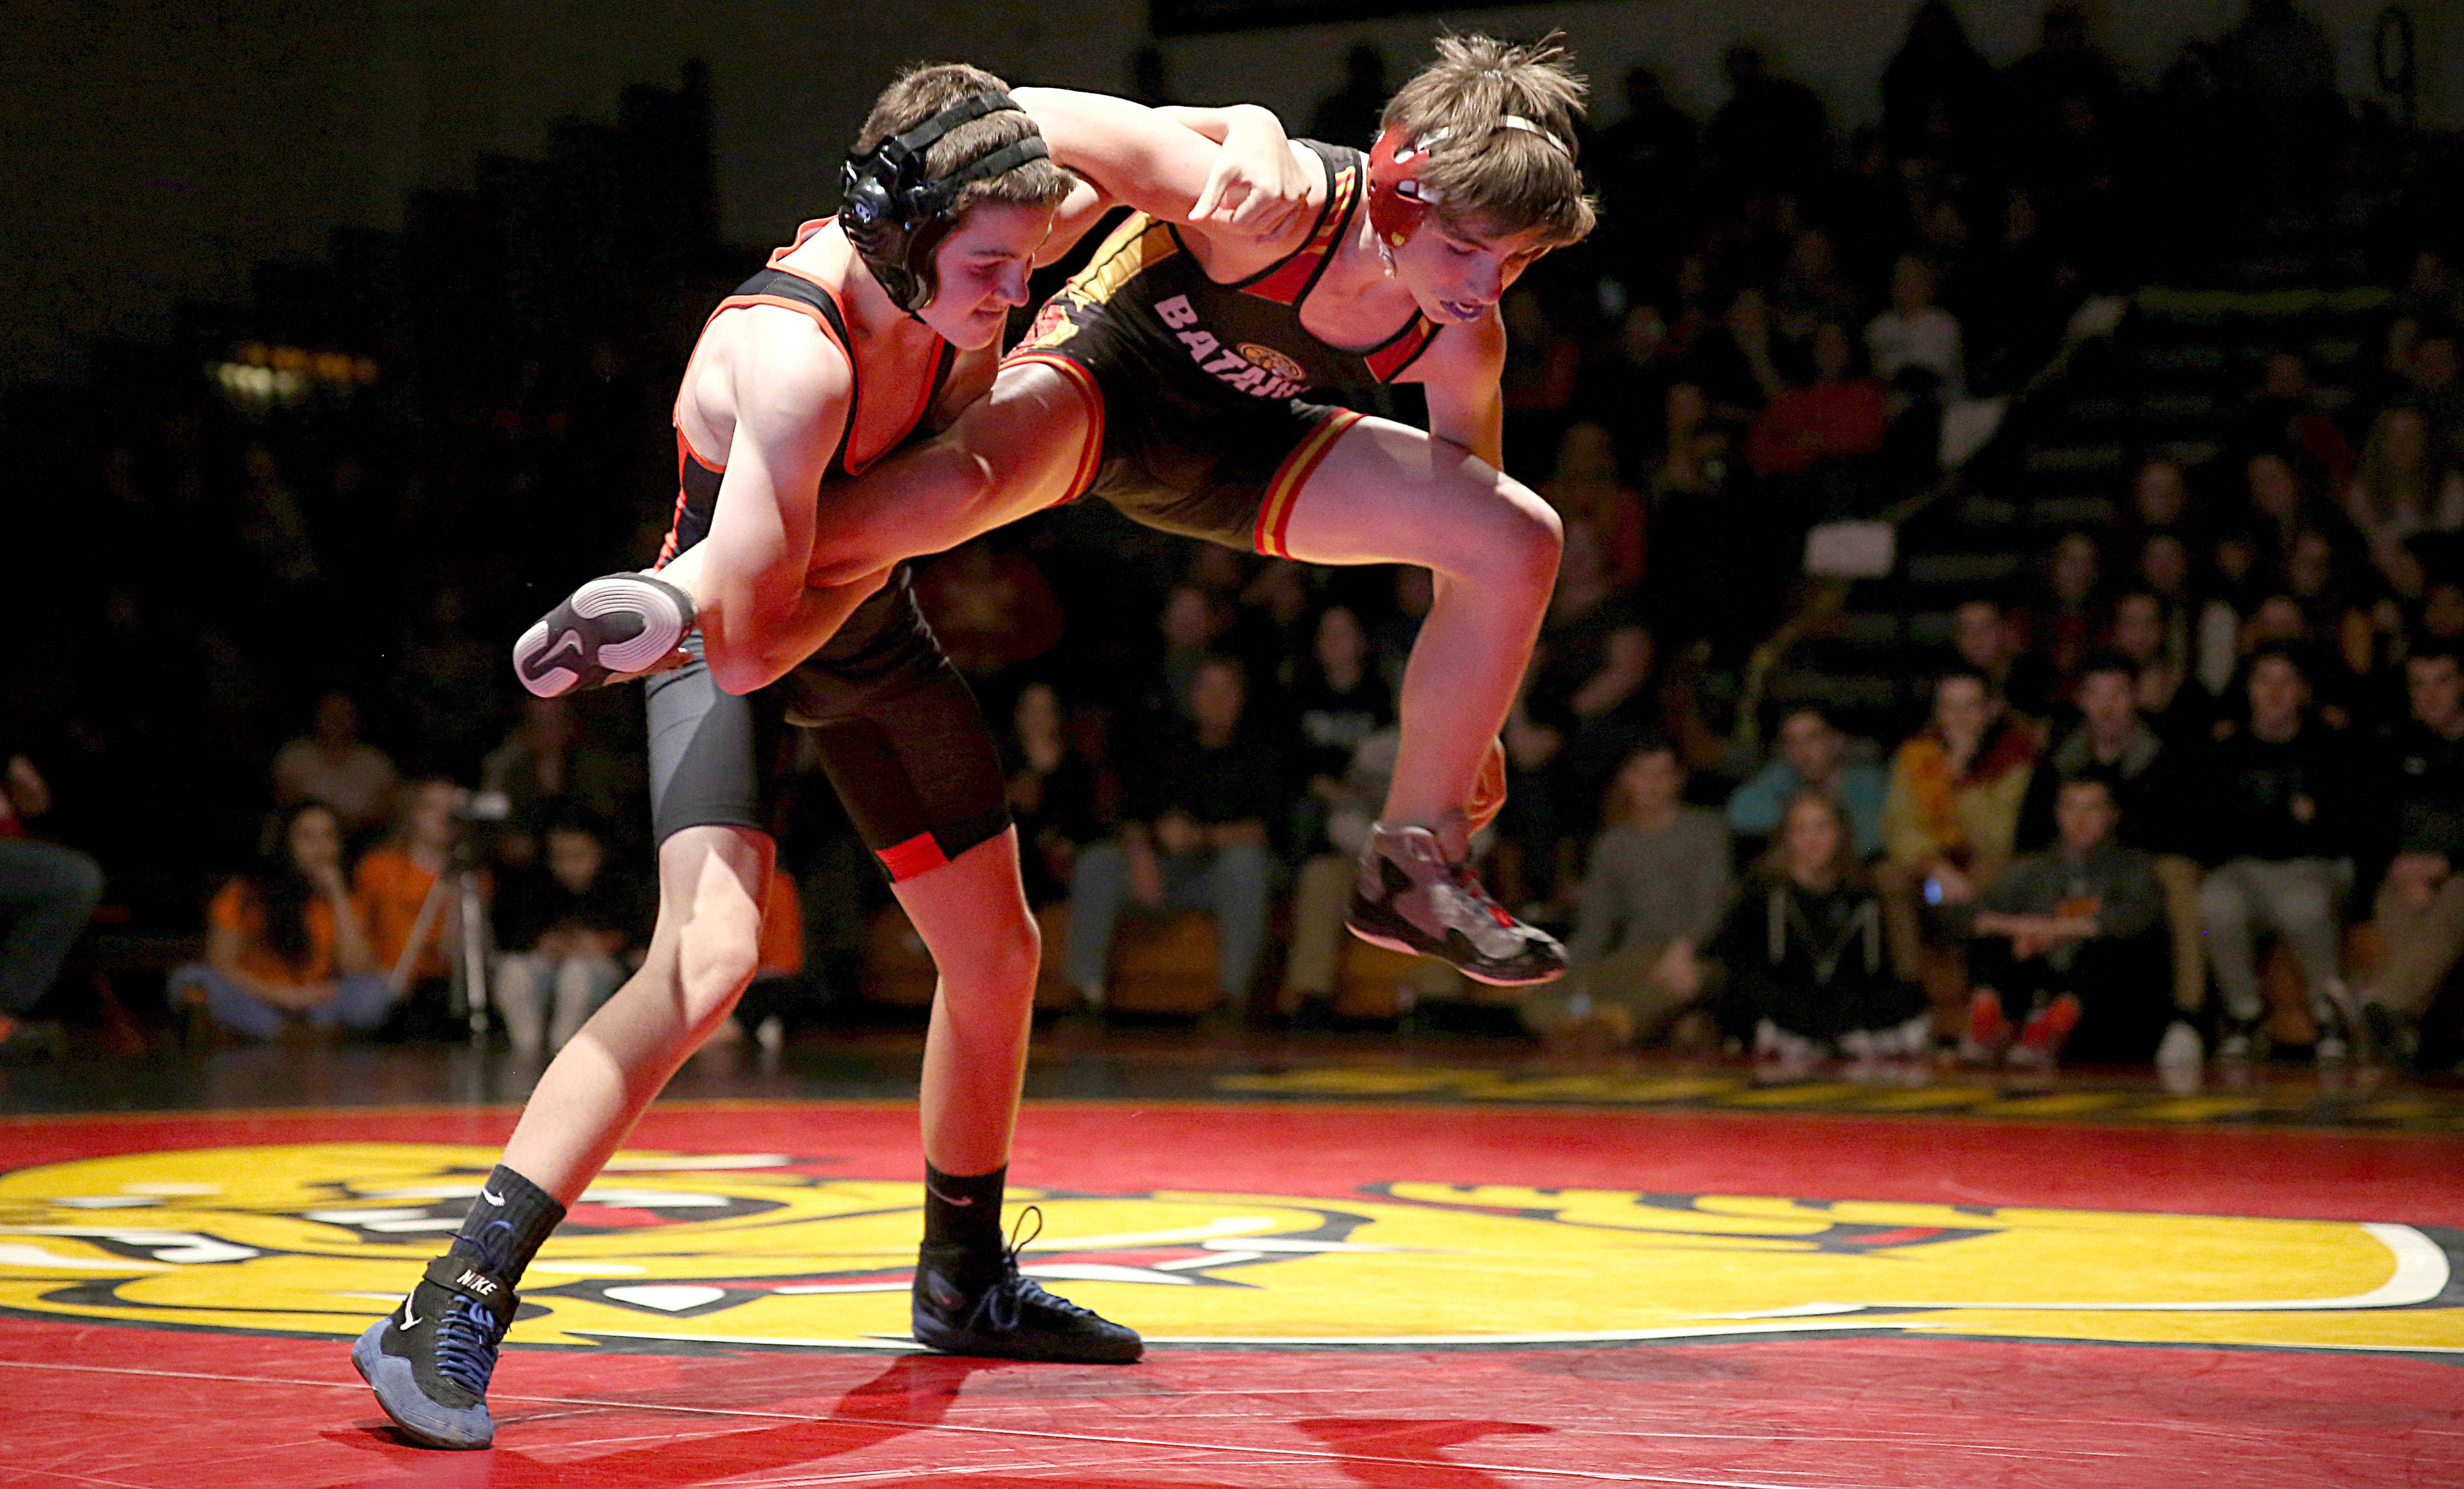 St. Charles East's Peyton Schroeder, left, battles as Batavia's Nick Pierce hops off the mat at 106 pounds during a varsity wrestling meet at Batavia Tuesday night.